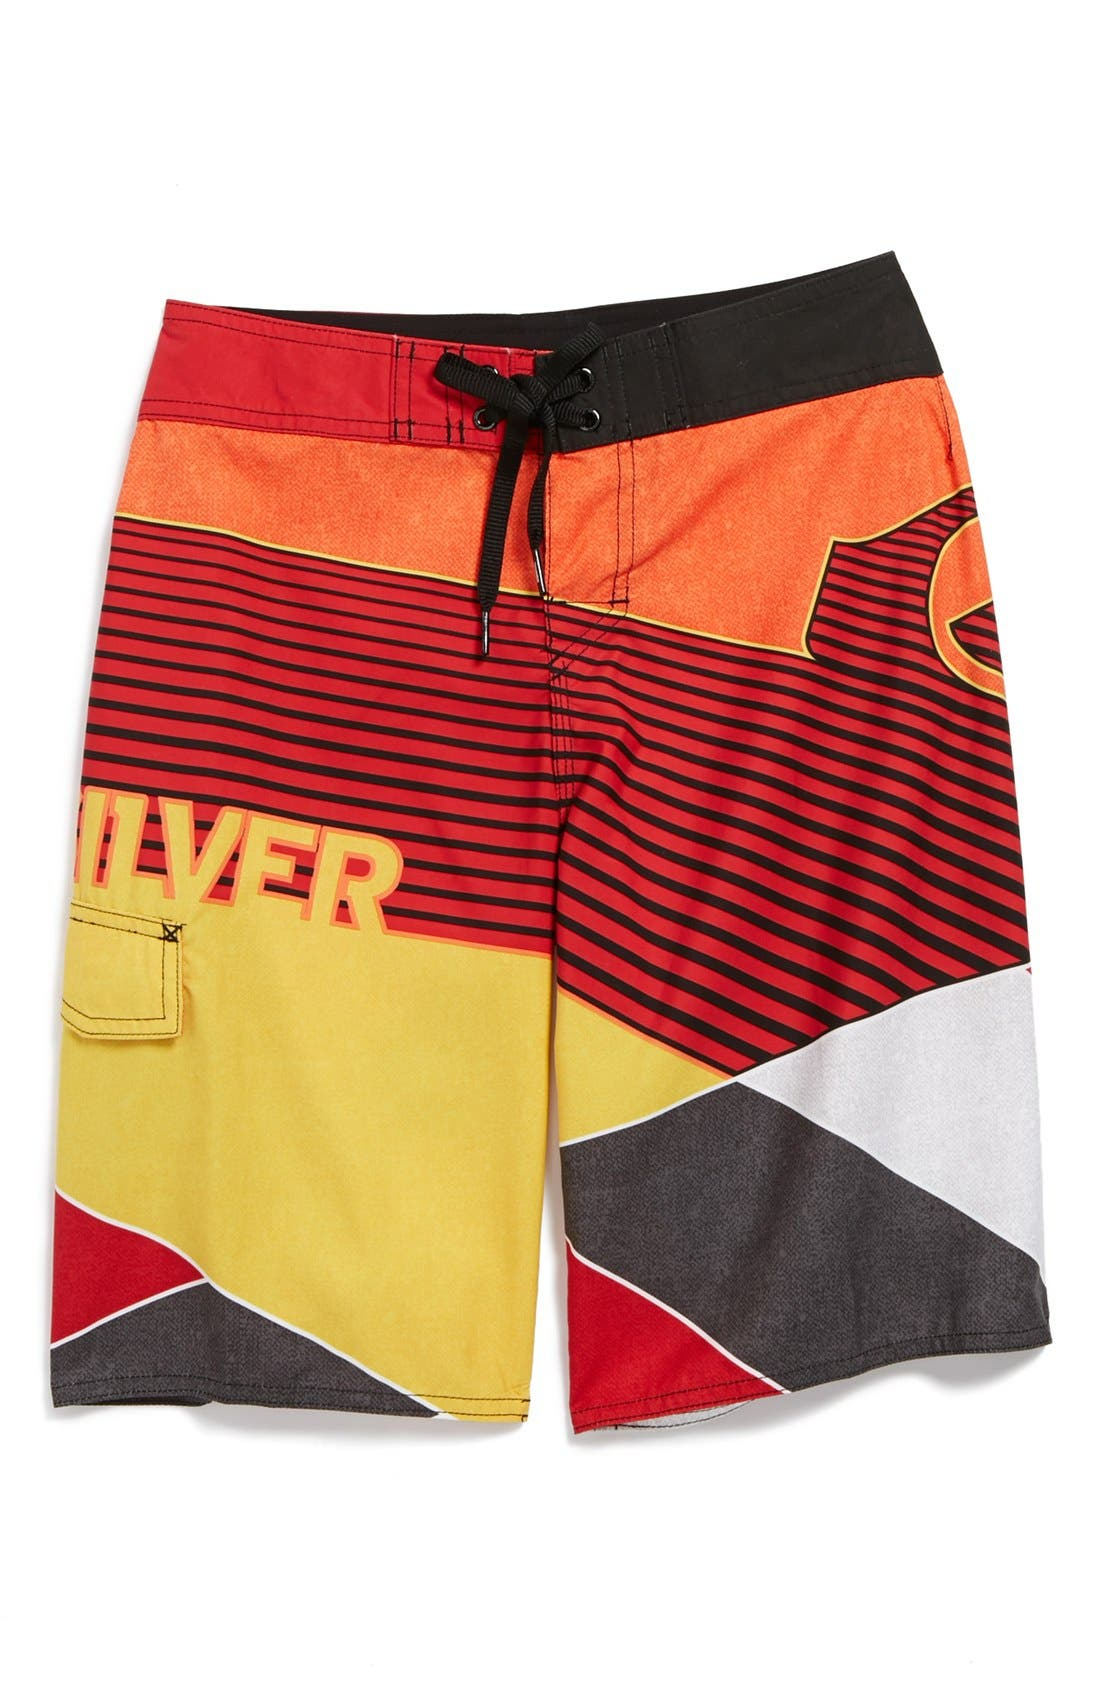 Alternate Image 1 Selected - Quiksilver 'Beach Day' Board Shorts (Little Boys)